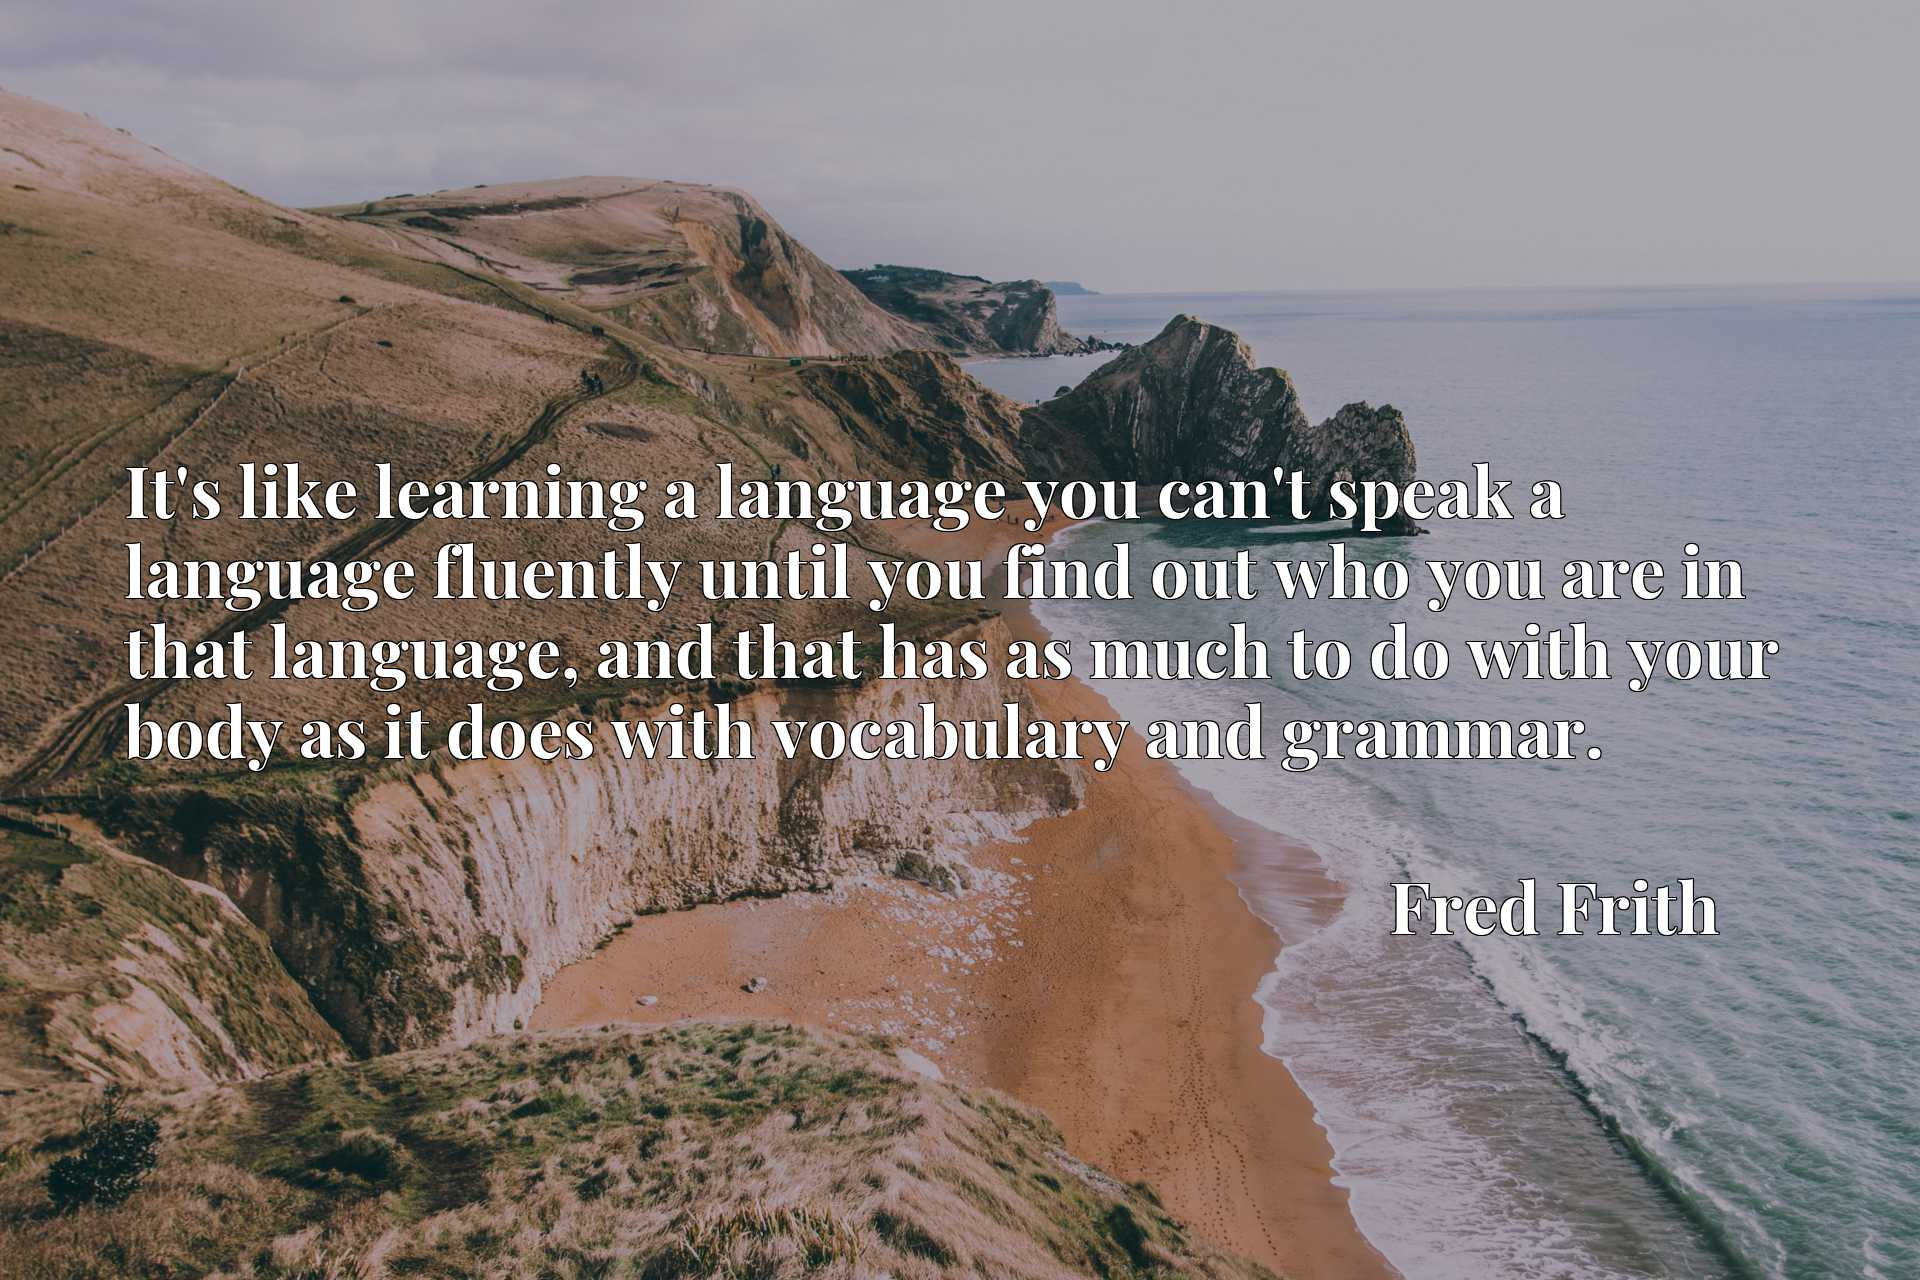 It's like learning a language you can't speak a language fluently until you find out who you are in that language, and that has as much to do with your body as it does with vocabulary and grammar.